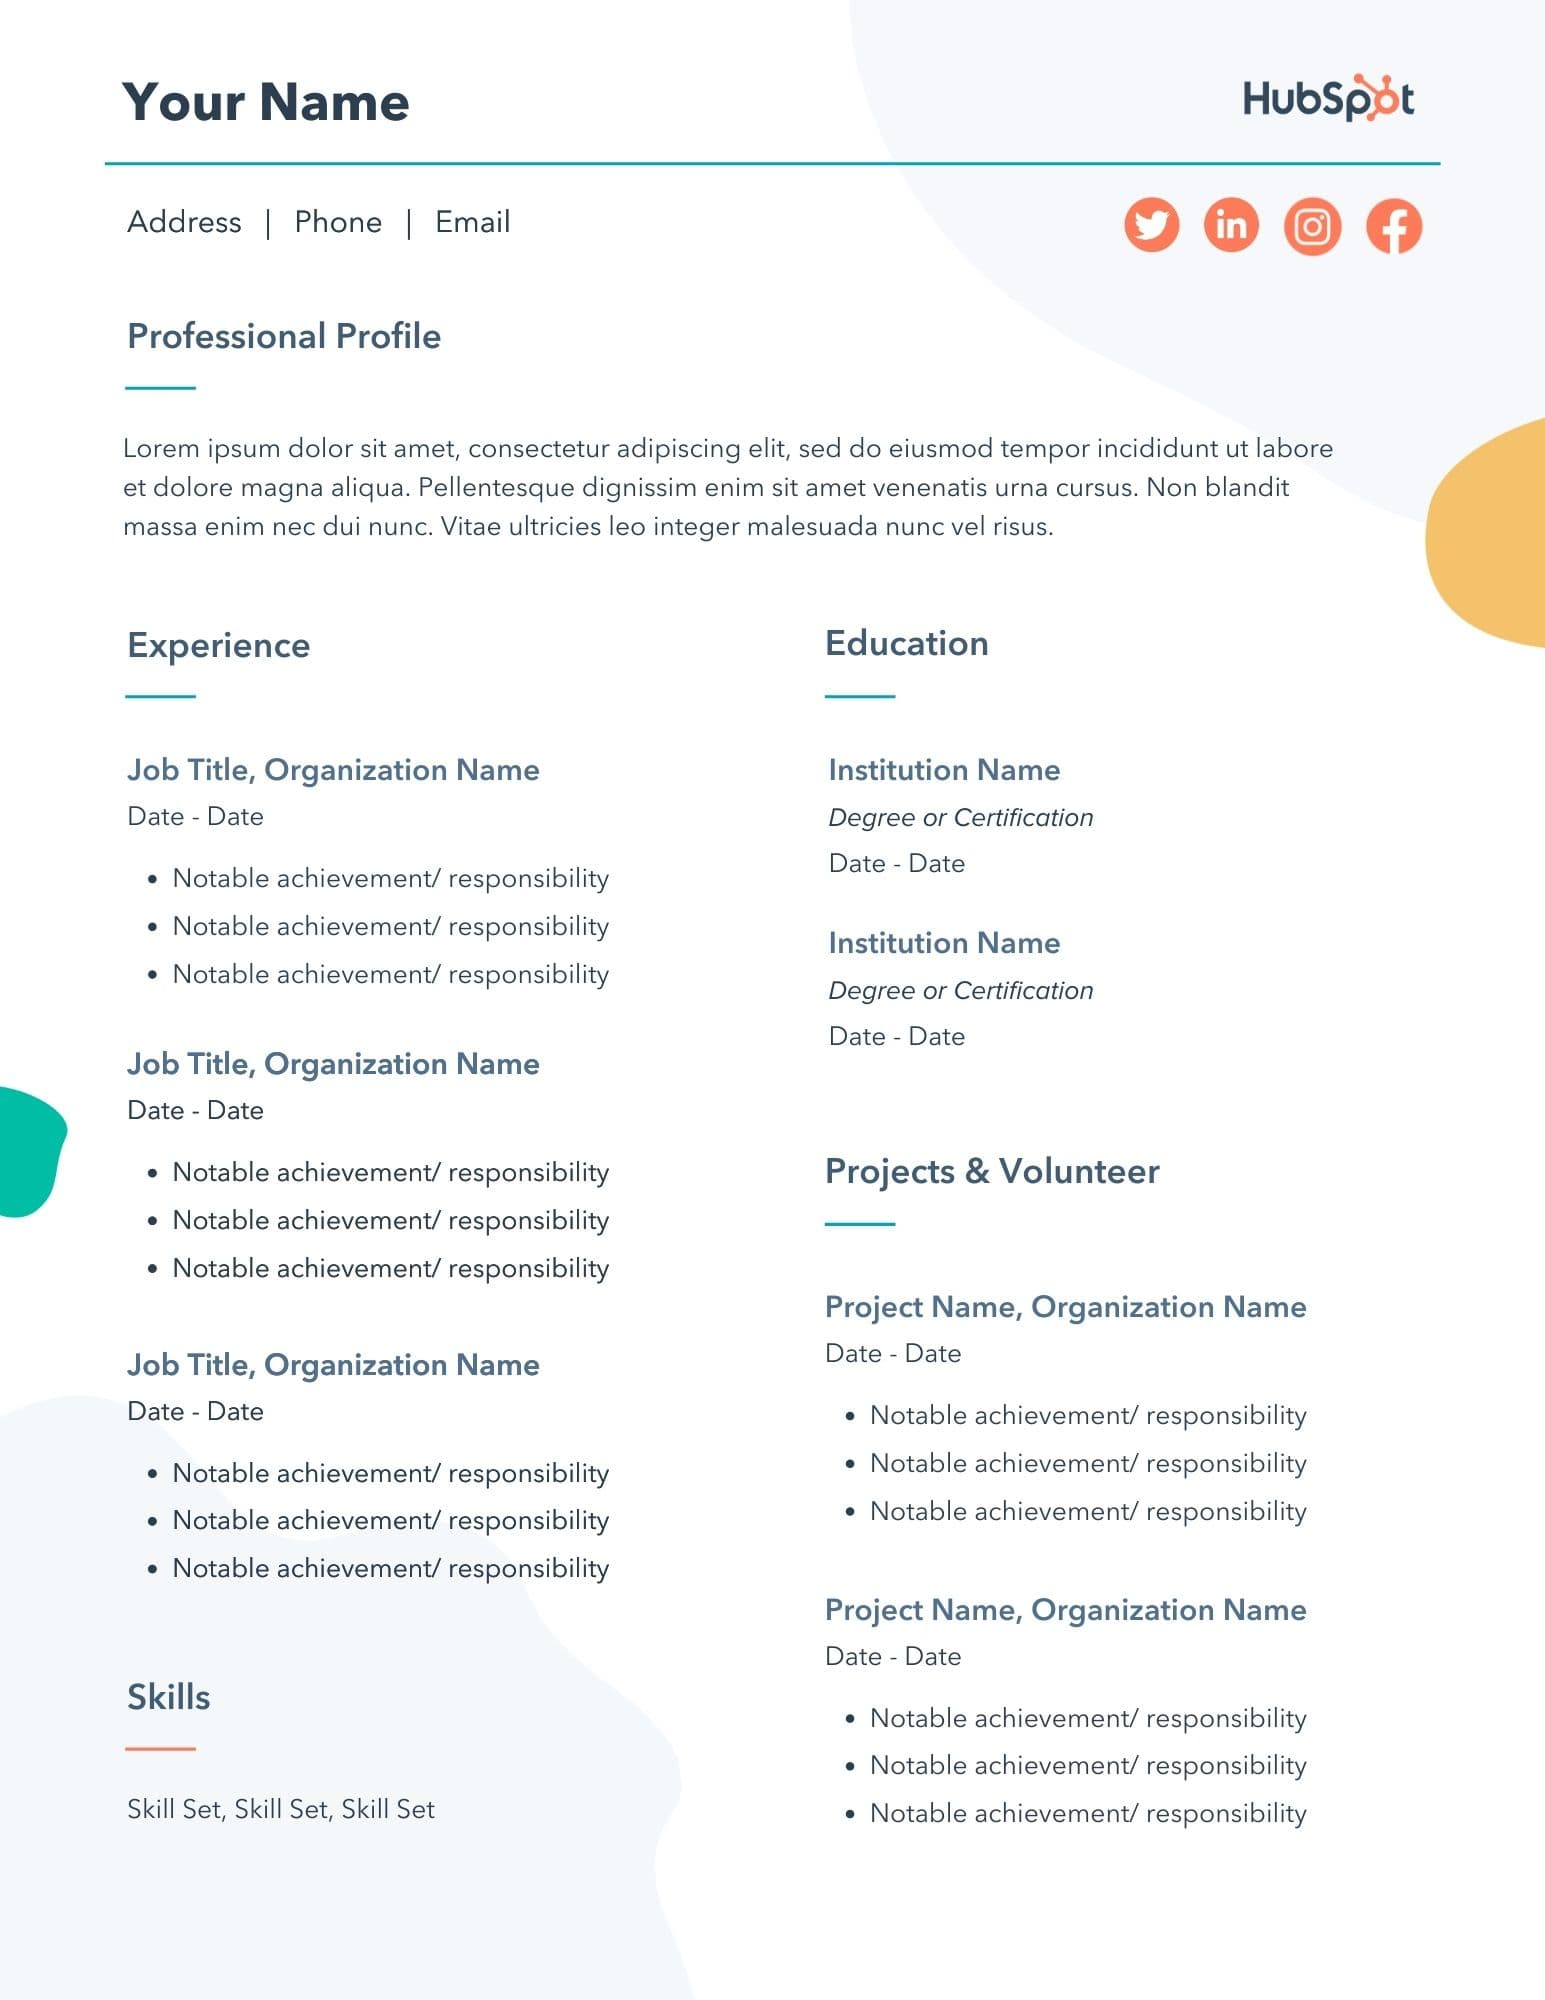 free resume templates for microsoft word to make your own experience template cover sheet Resume Experience Resume Template